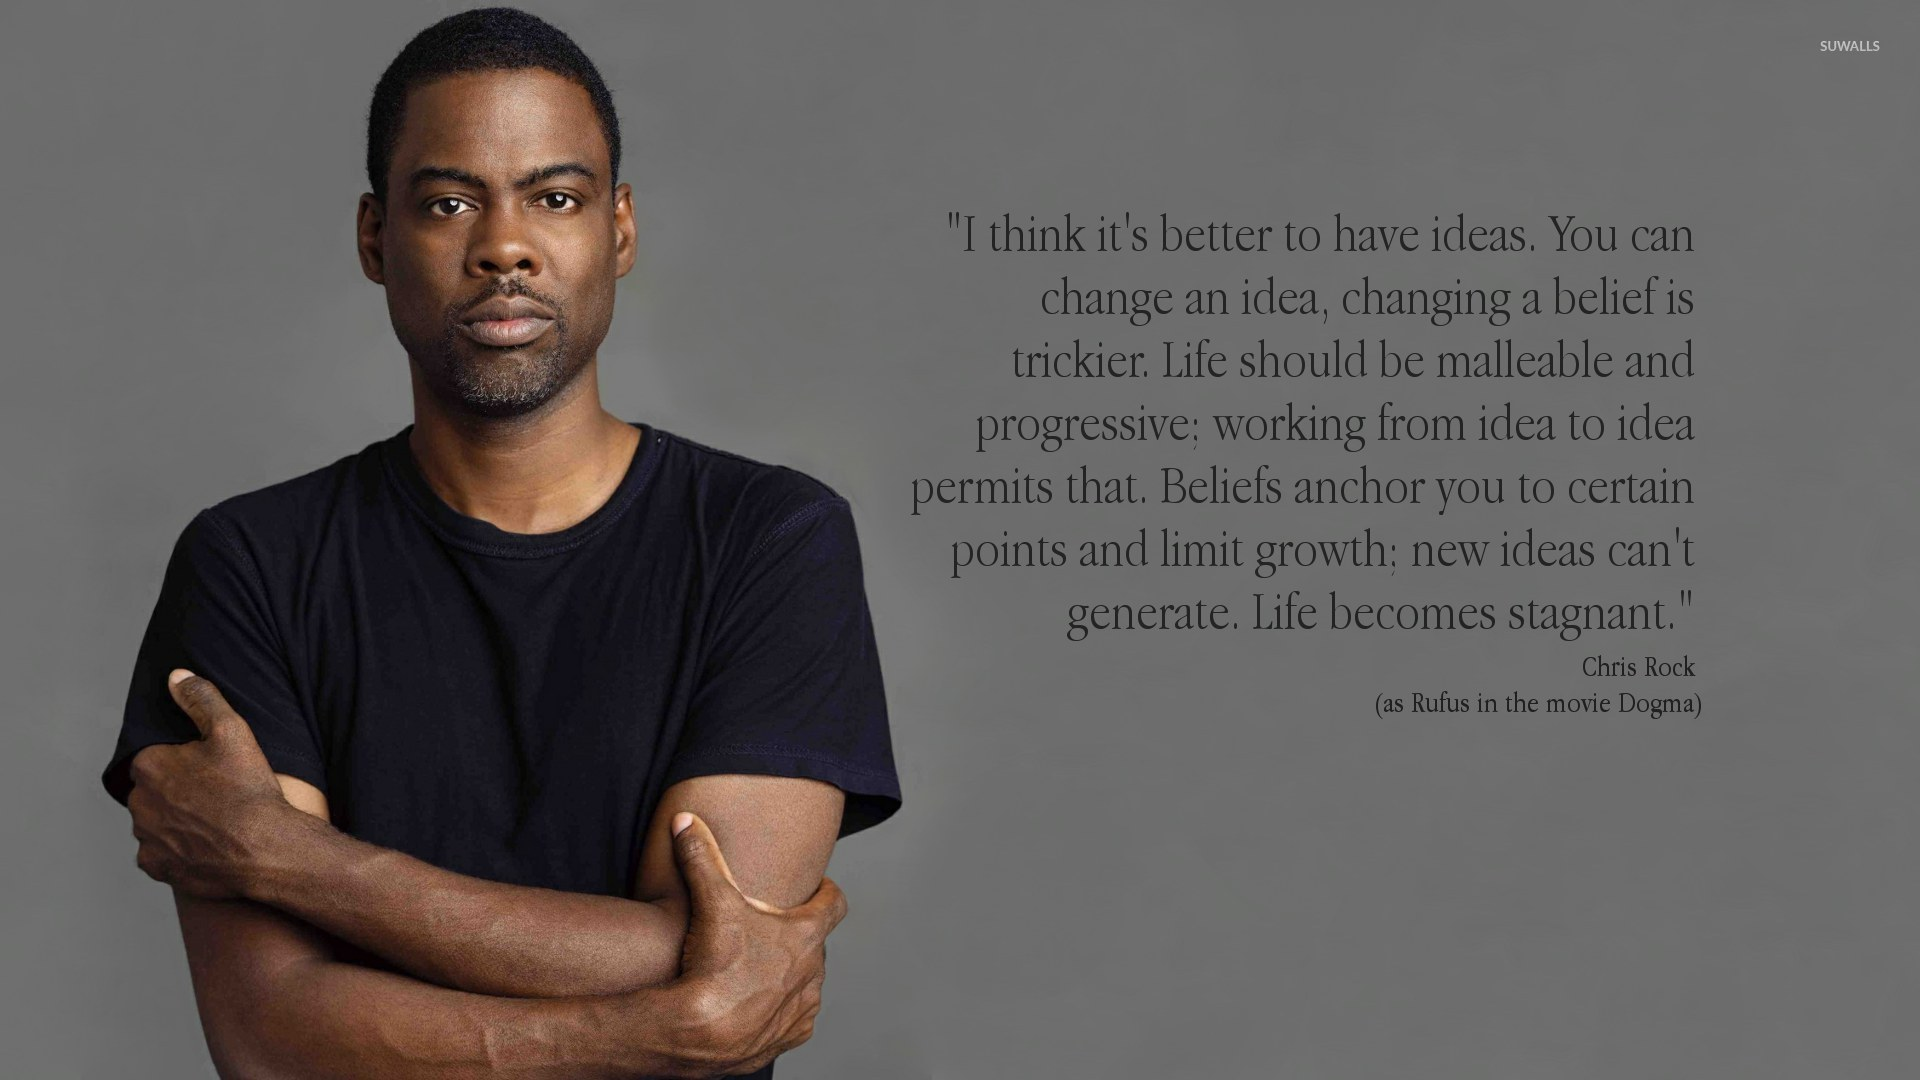 Chris Rock about ideas wallpaper   Quote wallpapers   26354 1920x1080